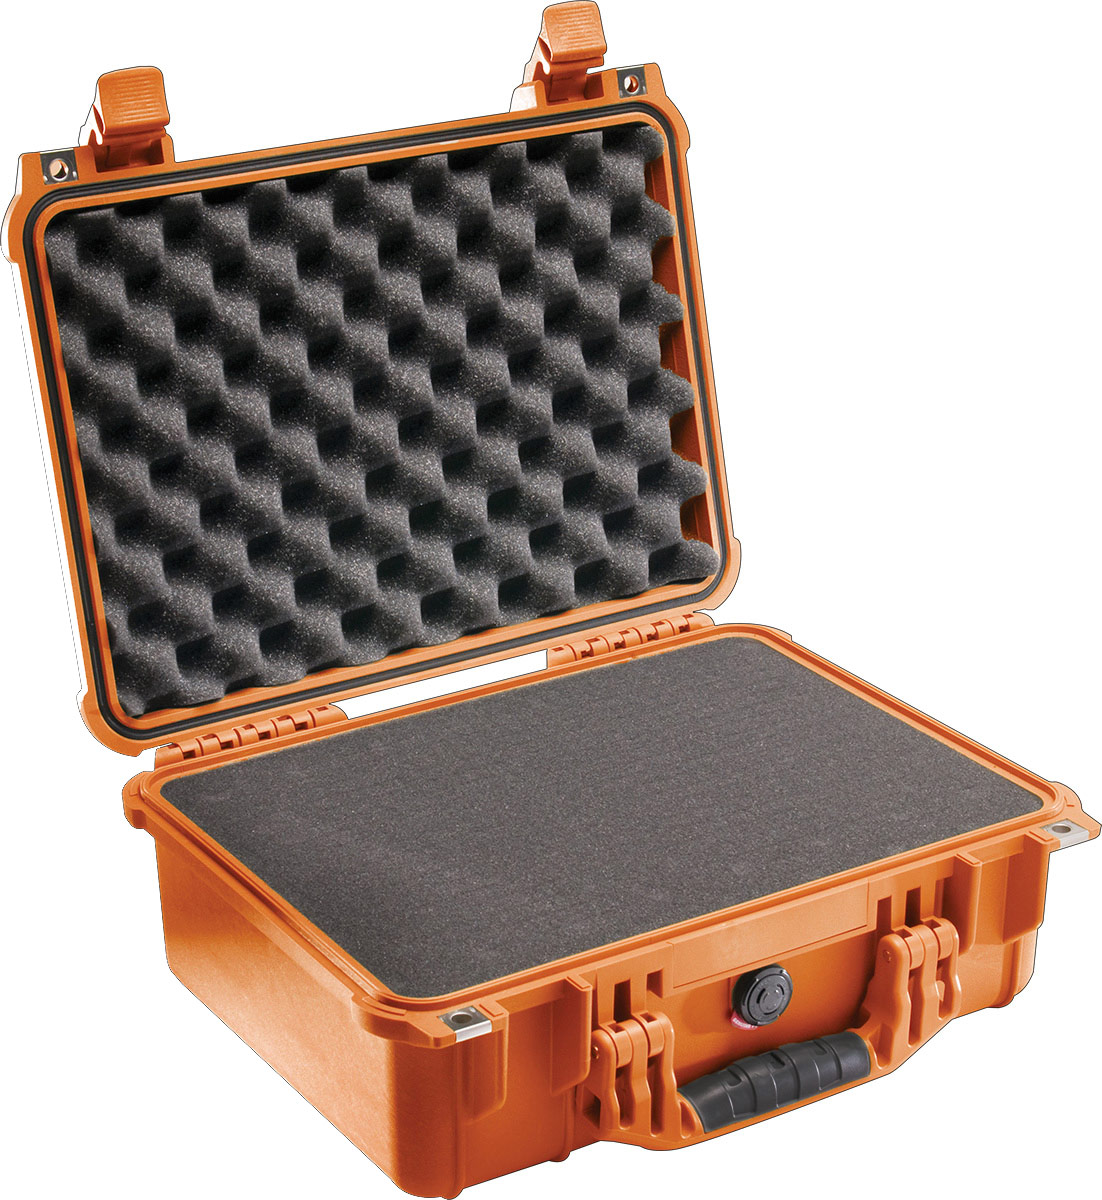 pelican 1450 orange foam protector equipment case